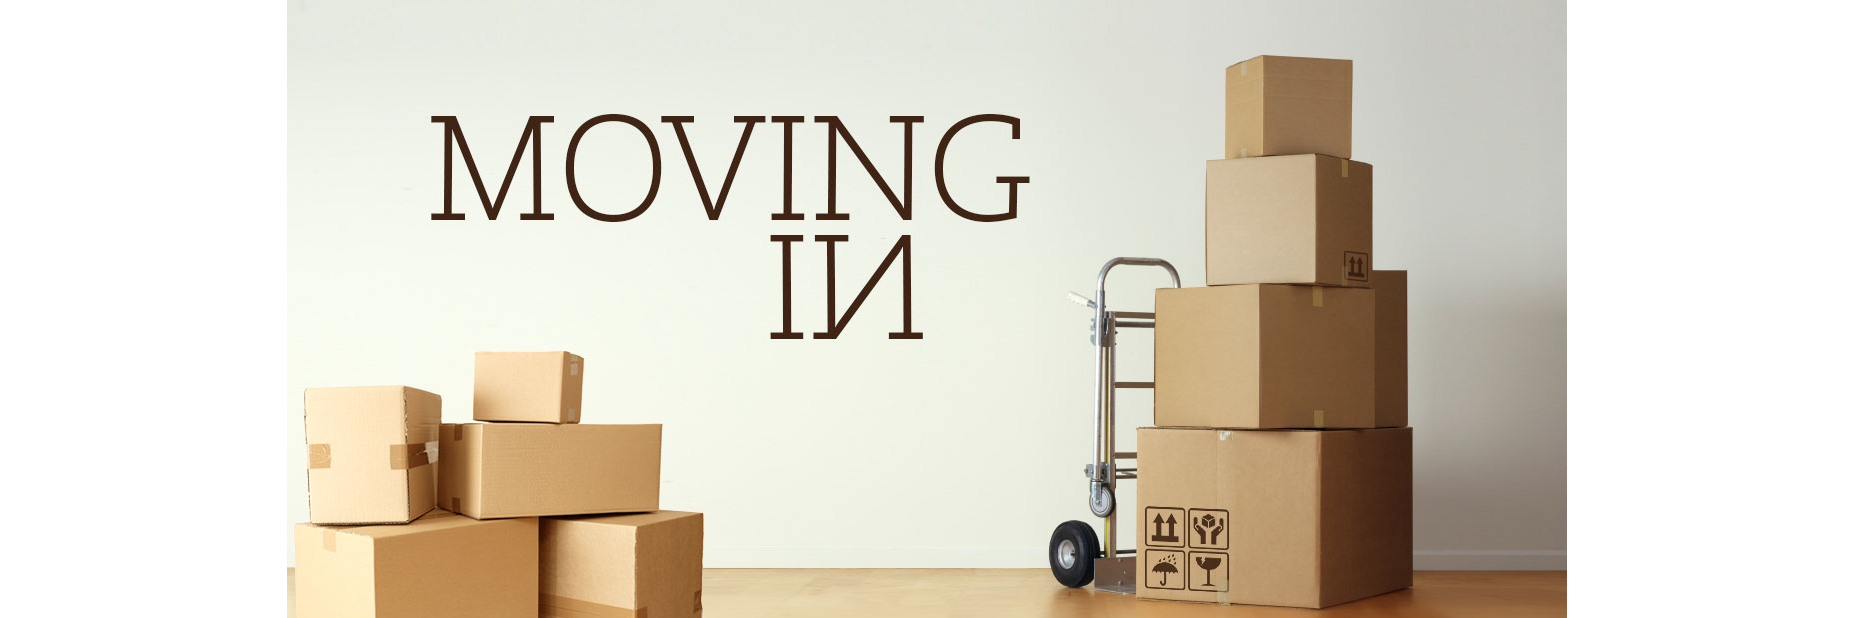 August 13th – Move-In Day